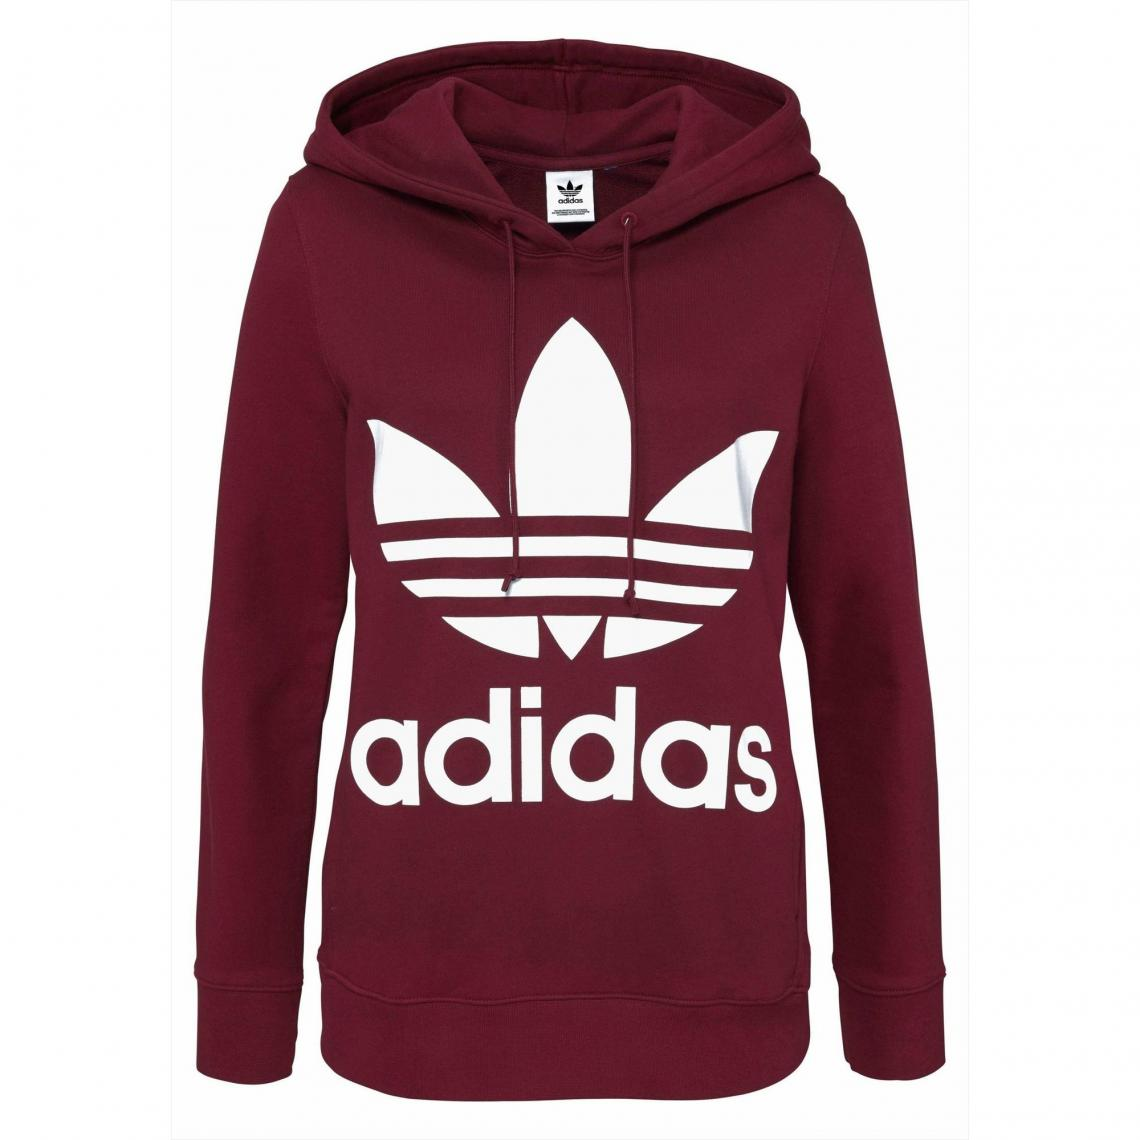 cfd5c242c232 Sweat enfilable à capuche femme adidas Originals - Bordeaux Adidas Originals